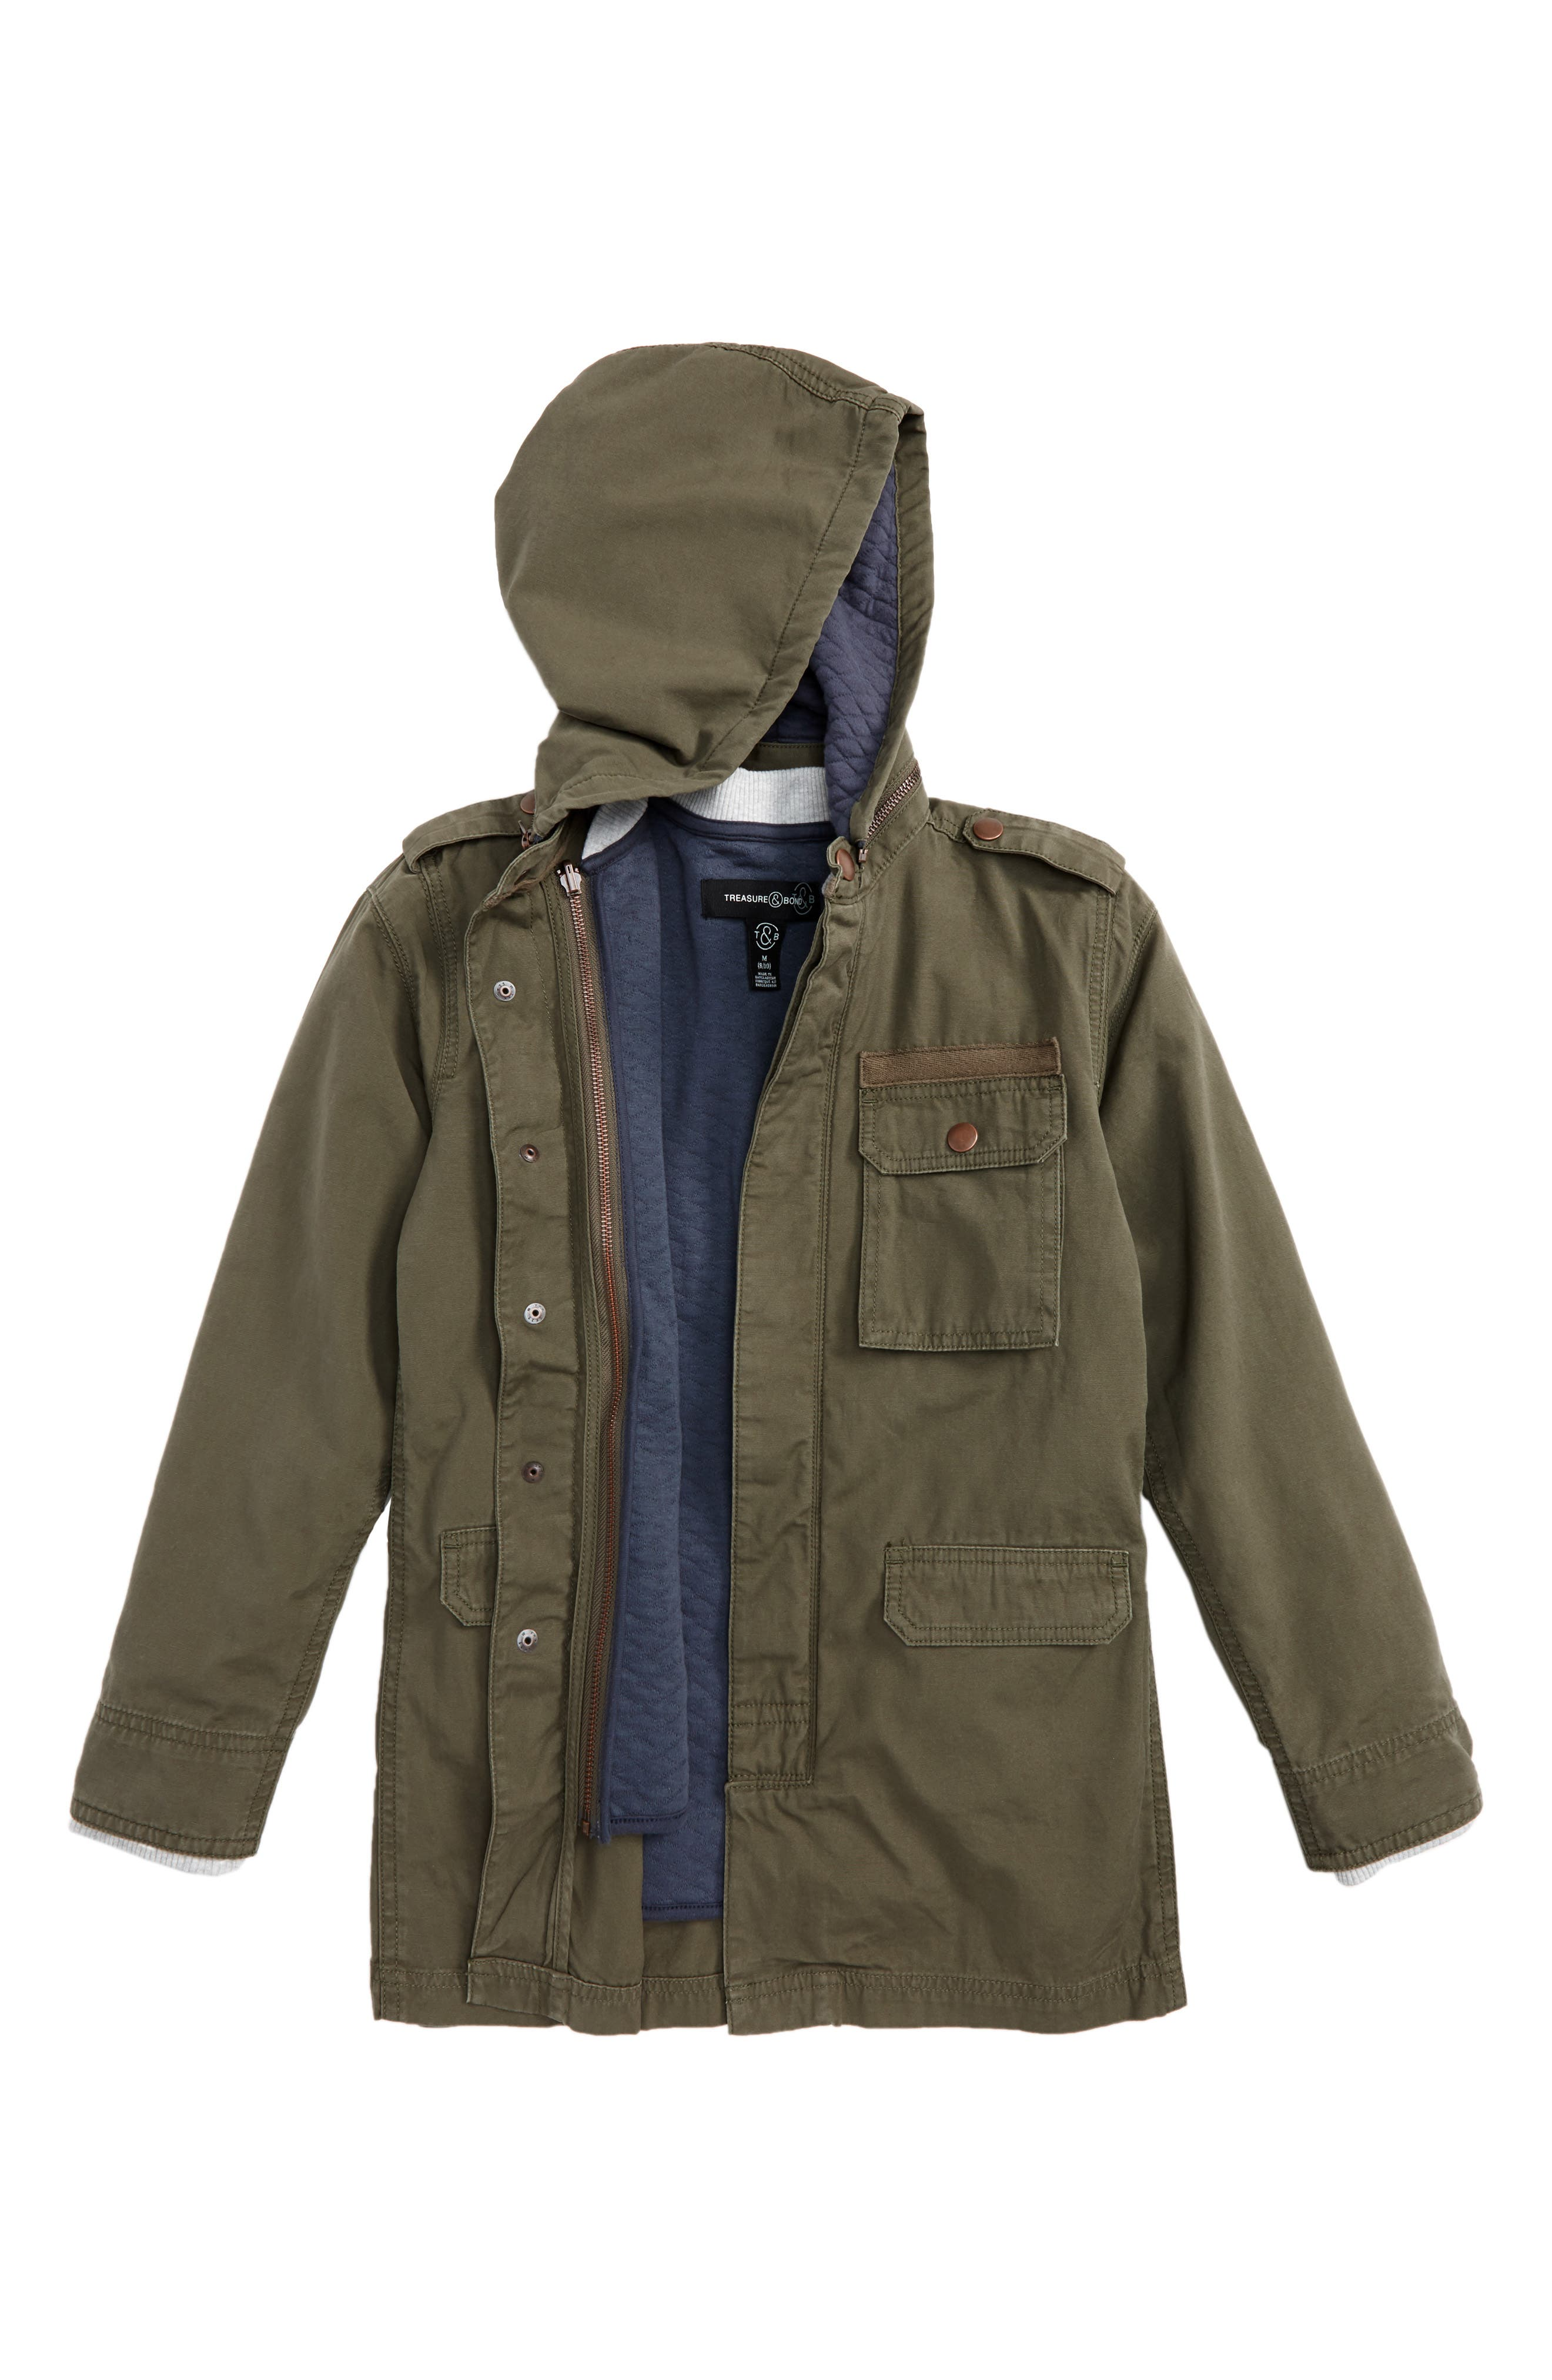 Treasure & Bond 2-in-1 Hooded Military Jacket (Big Boys)